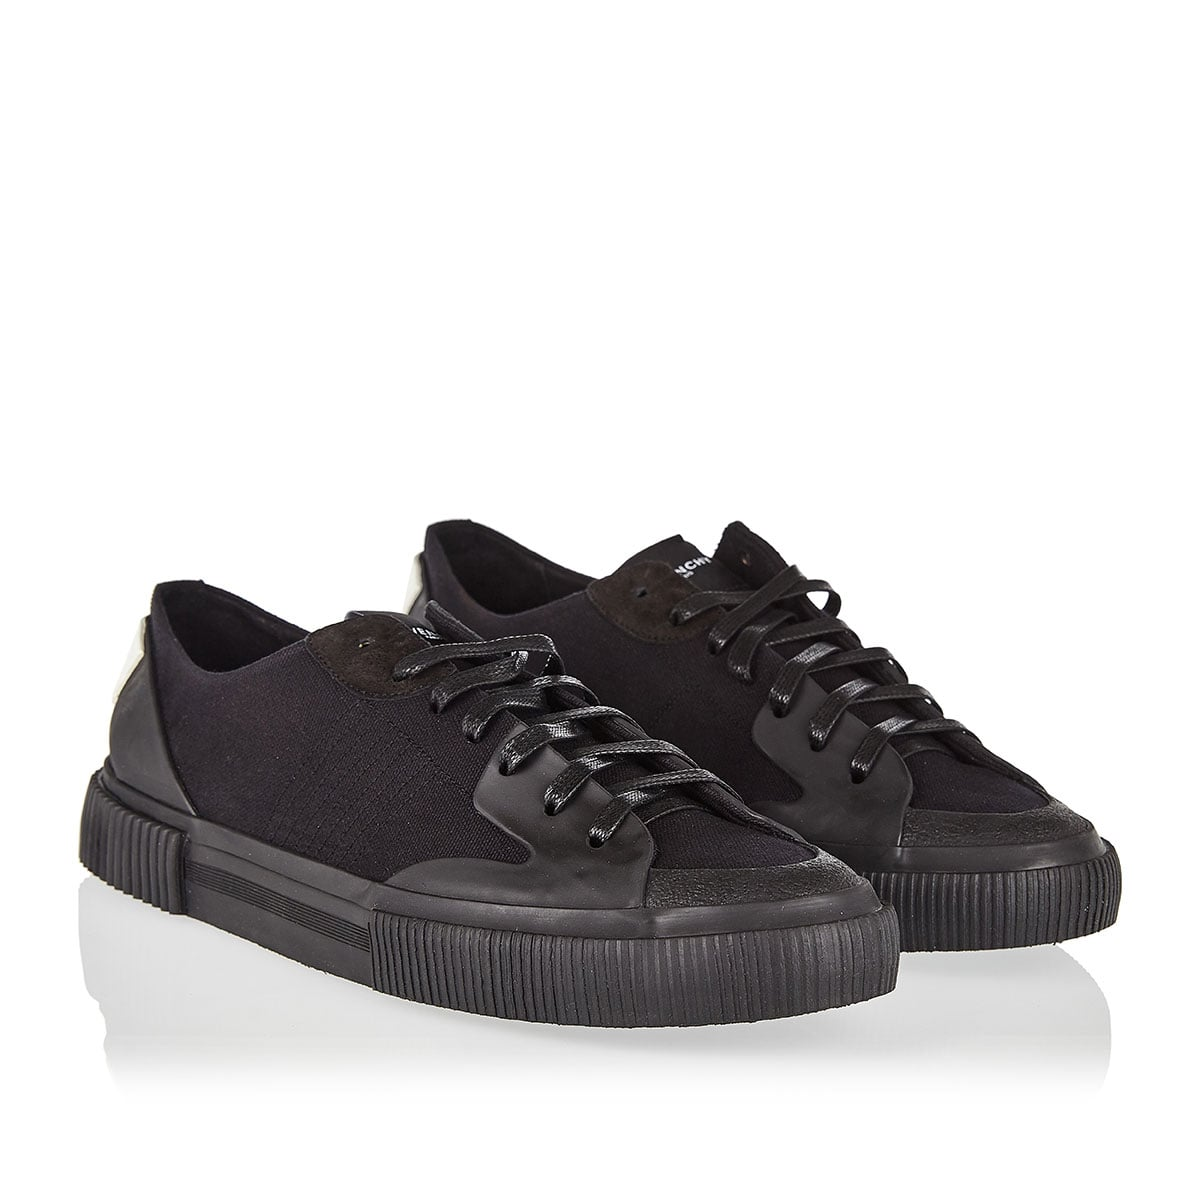 Tennis low-top canvas sneakers